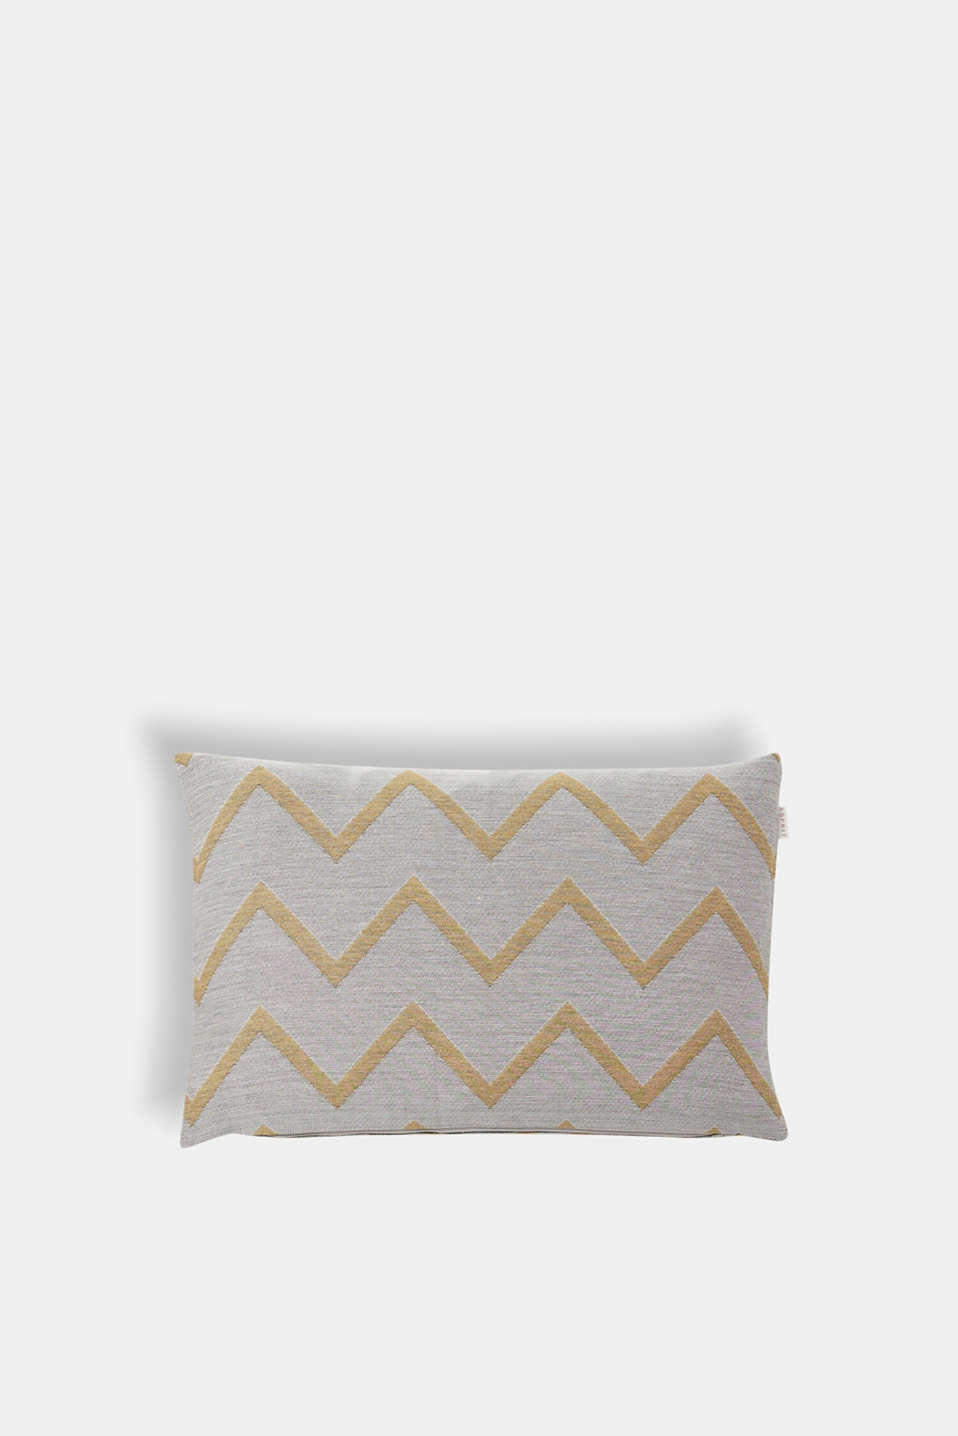 Esprit - Cushion cover made of jacquard fabric